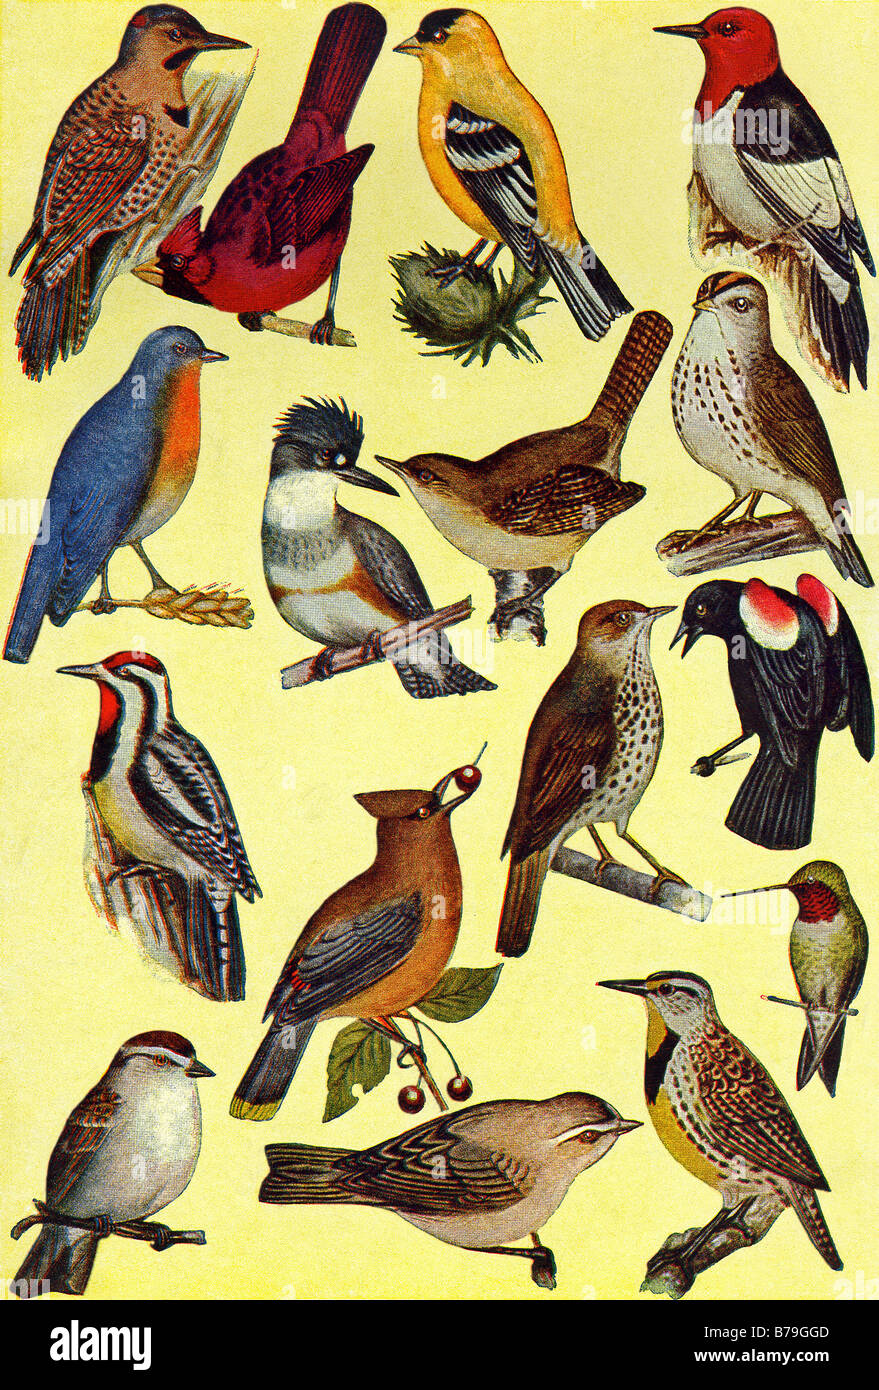 Common Birds - Stock Image